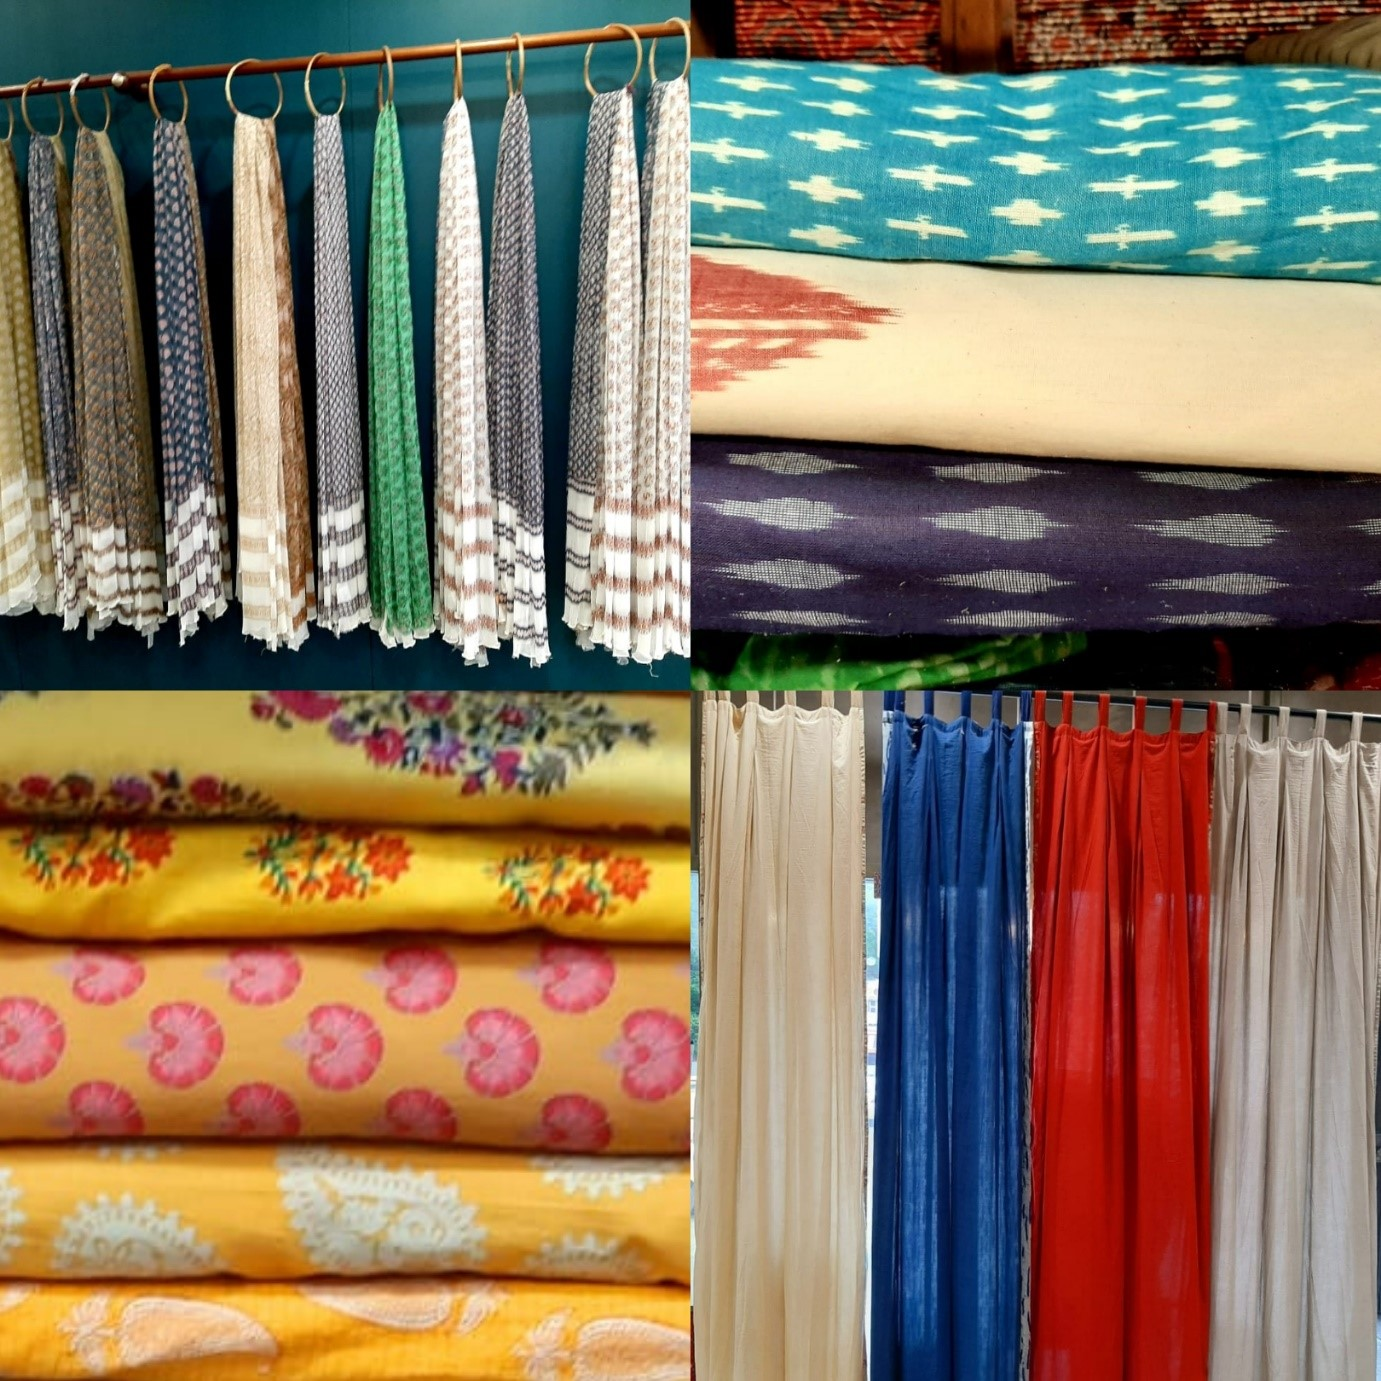 stoles, fabrics, seasons vadodara, curtains, cottons, yellow, ikat prints, floral motifs, home decor, shopping